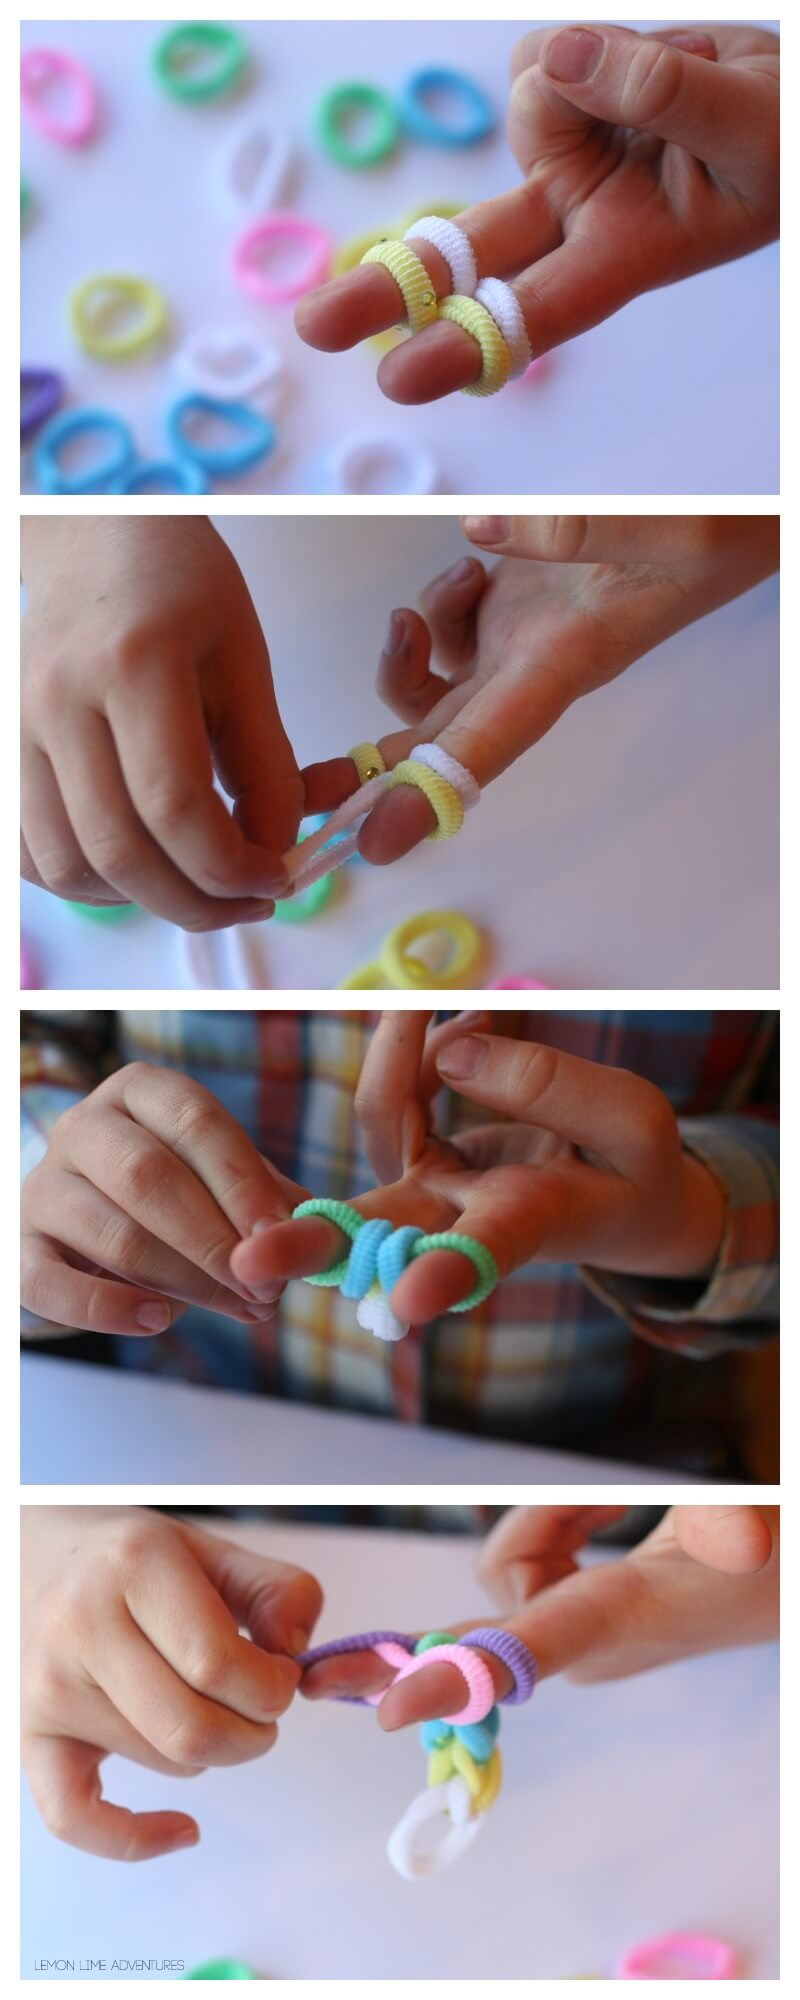 How to make a simple finger knit project without rainbow looms